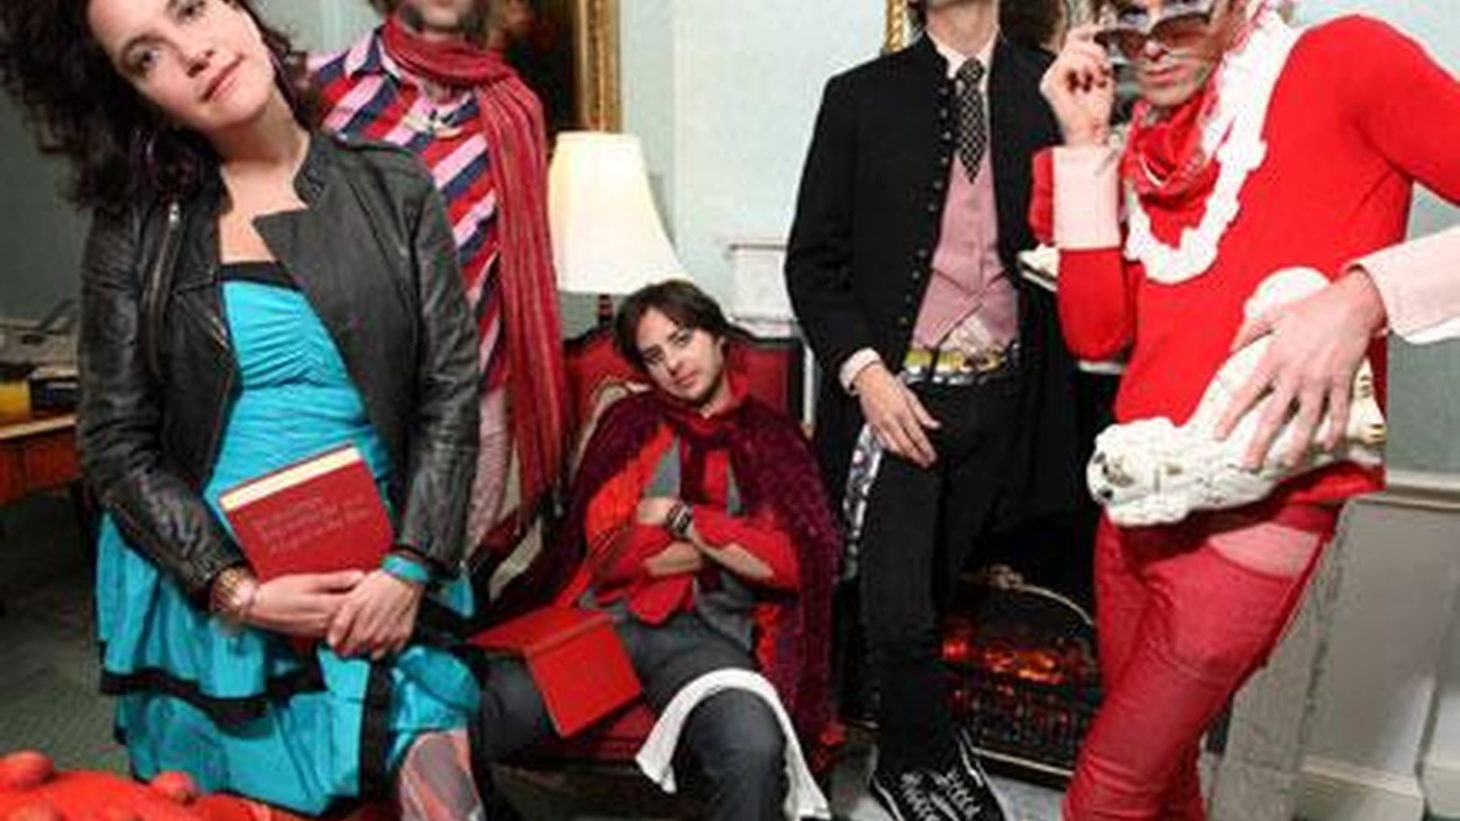 """Of Montreal team up with revered producer Jon Brion, whose whimsical nature encouraged the playful and theatrical songs on their new release. Their tenth album, False Priest, finds the band at the top of their game as we'll hear on Today's Top Tune """"Coquet Coquette."""""""